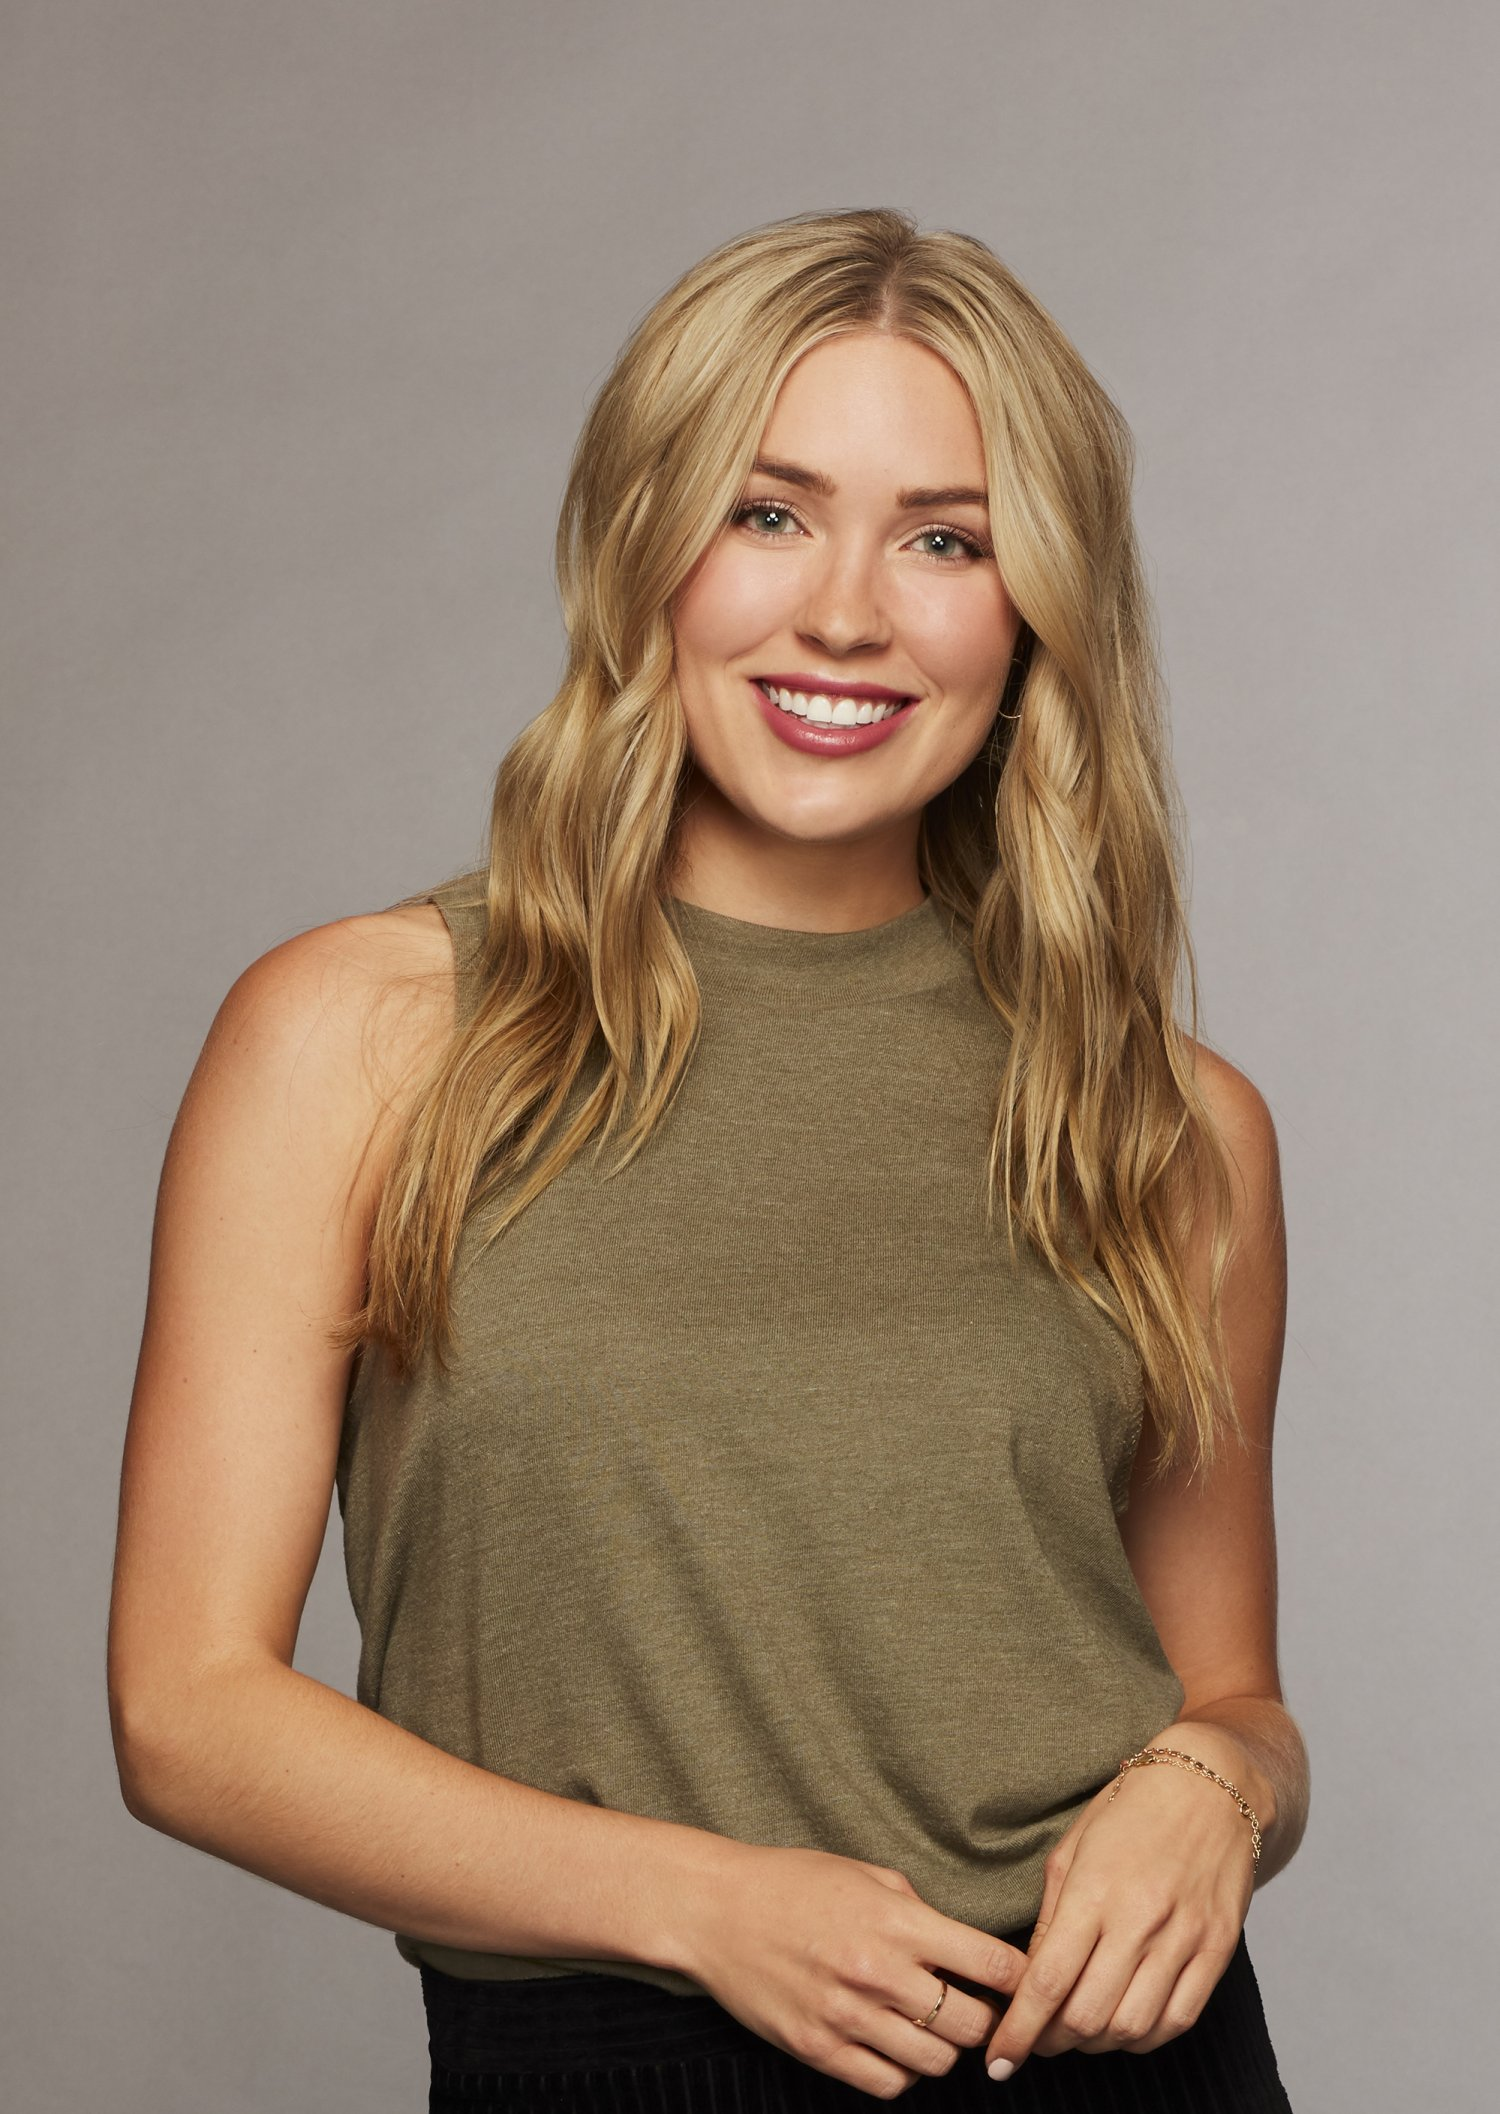 Bachelor 23 - Cassie Randolph - **Sleuthing Spoilers** - Page 10 4833-o